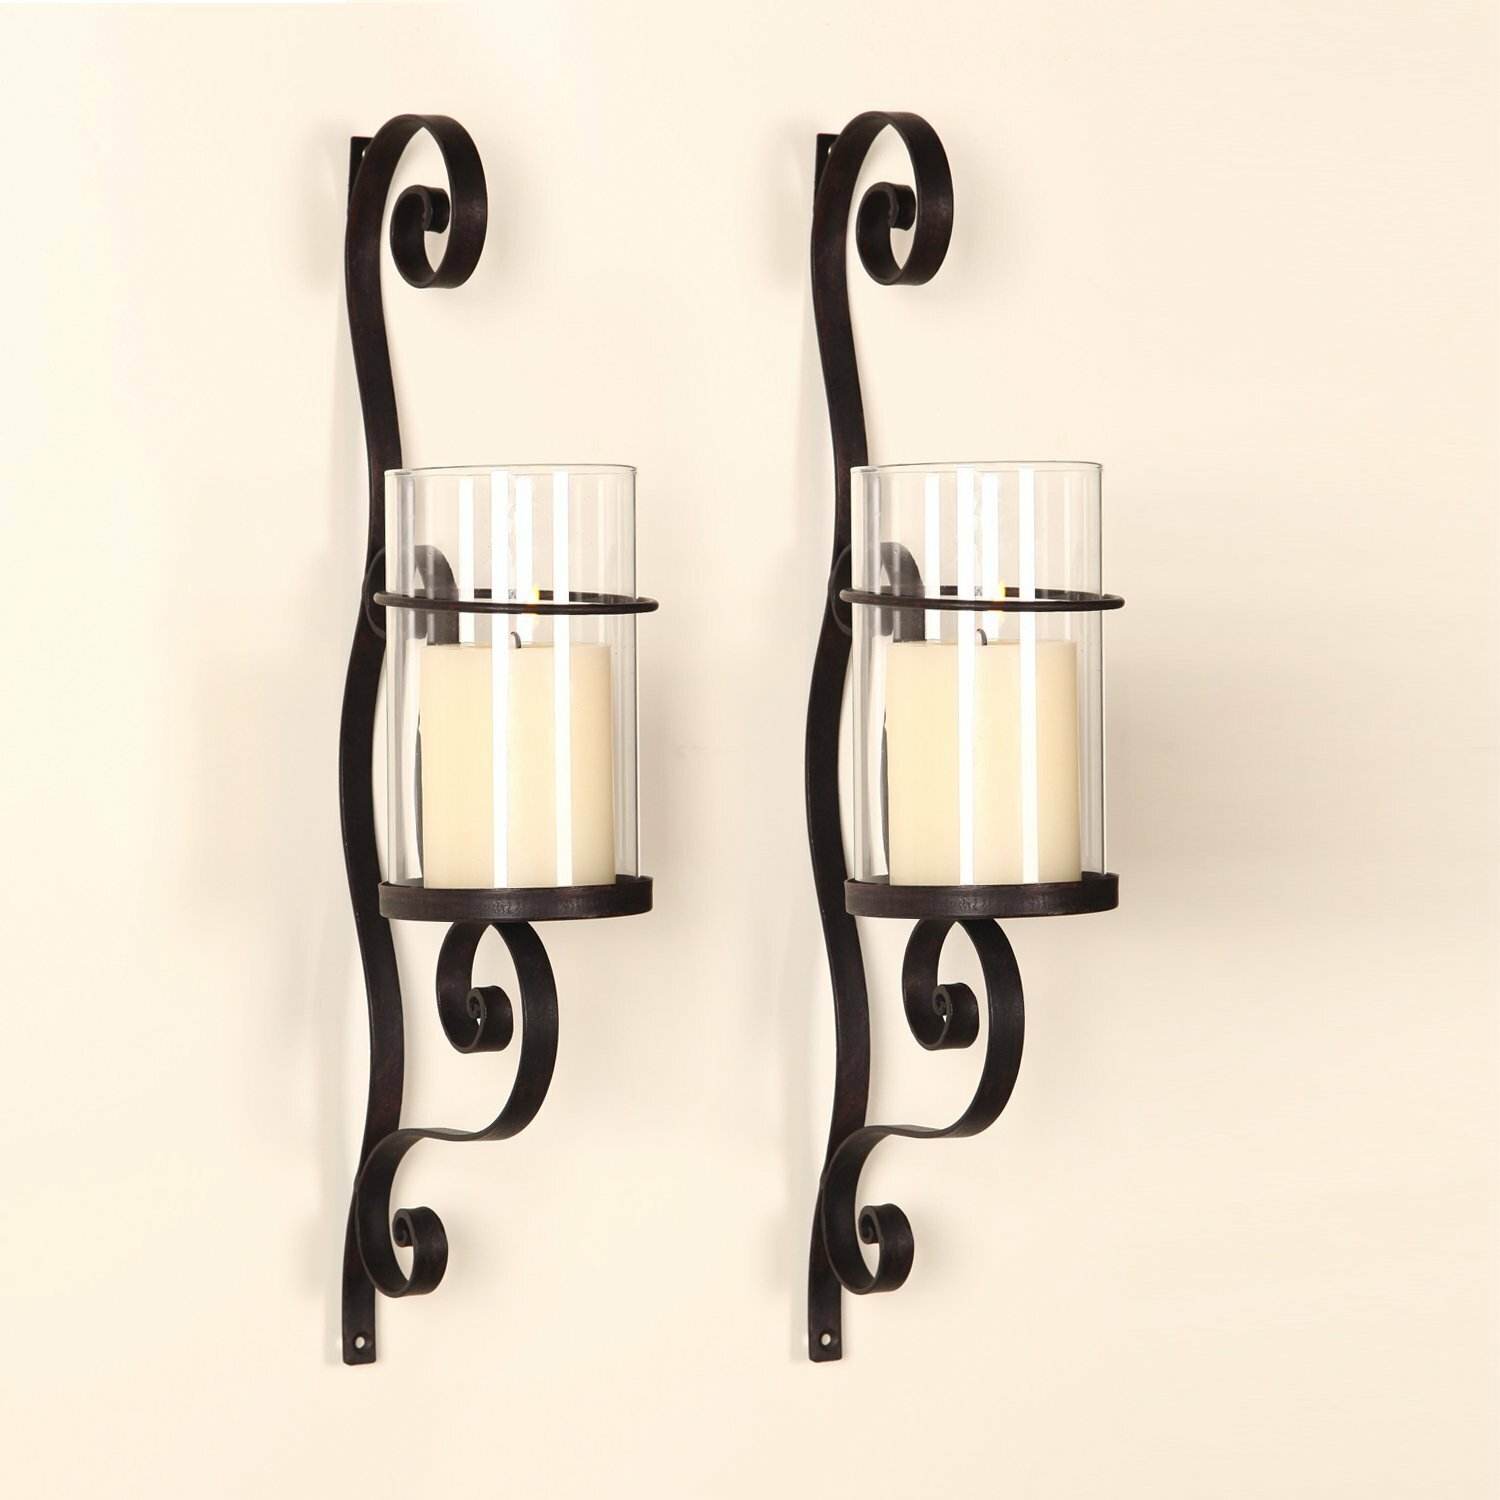 Merveilleux Red Barrel Studio Iron Wall Sconce Candle Holder U0026 Reviews | Wayfair